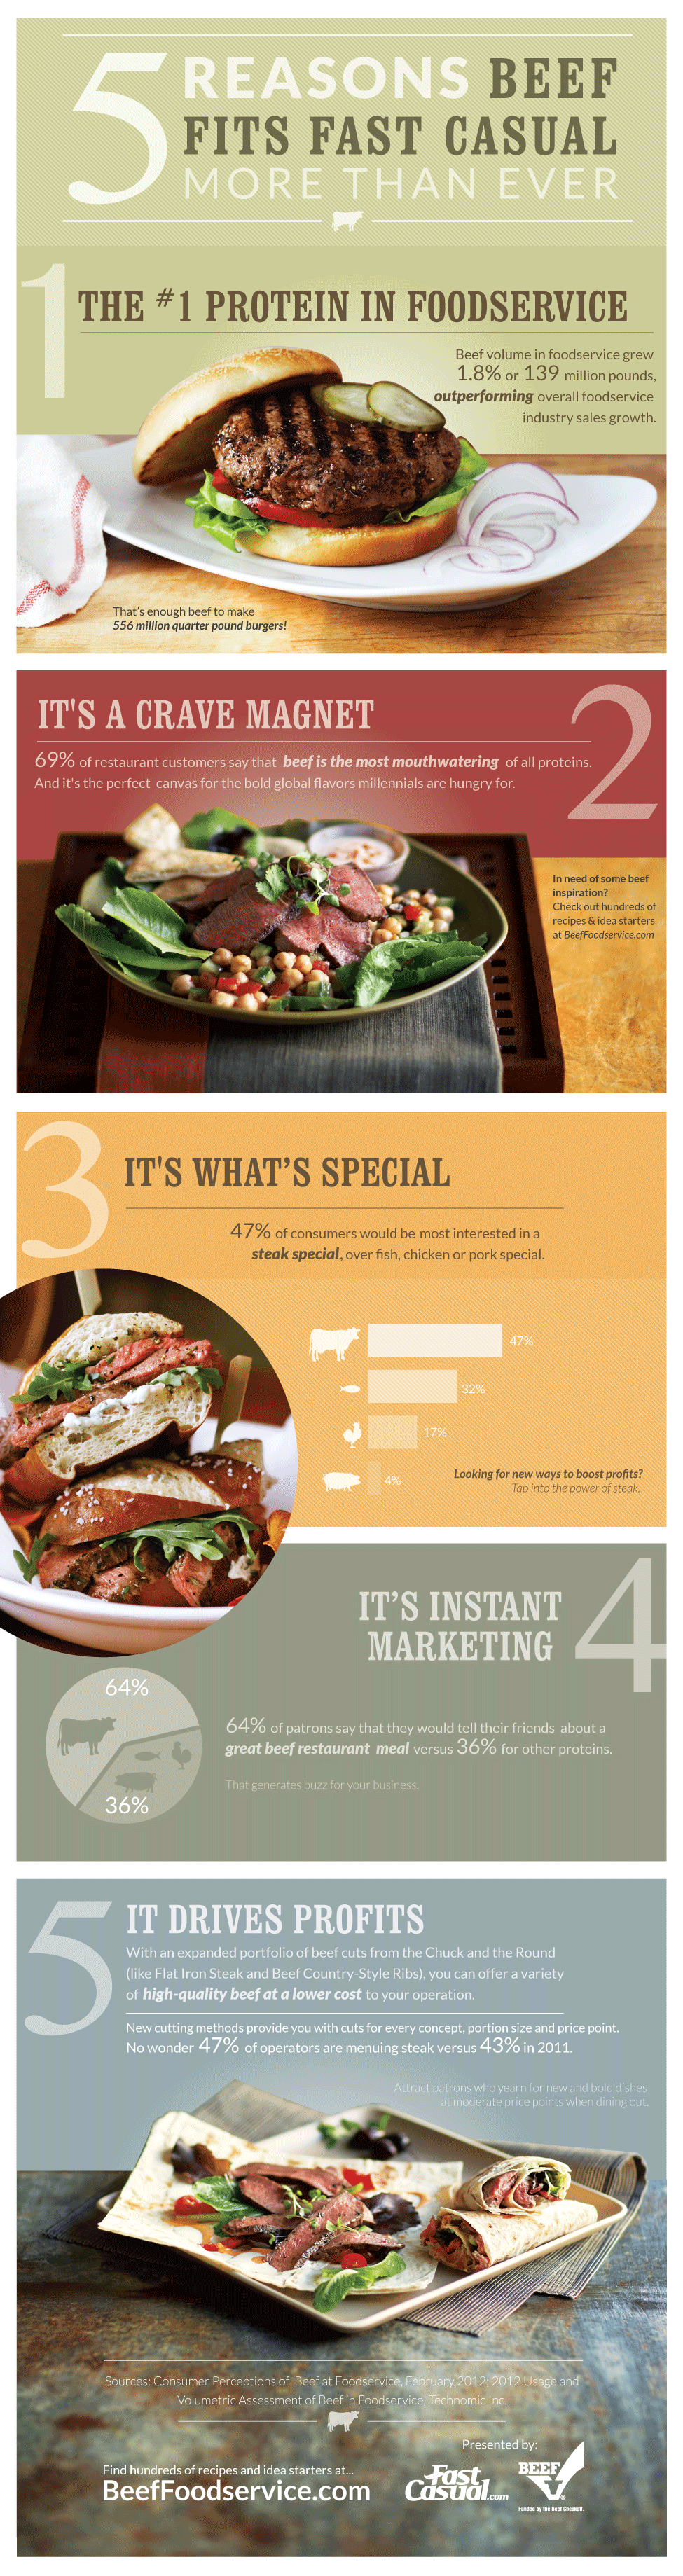 5 Reasons Beef Fits Fast Casual [infographic]